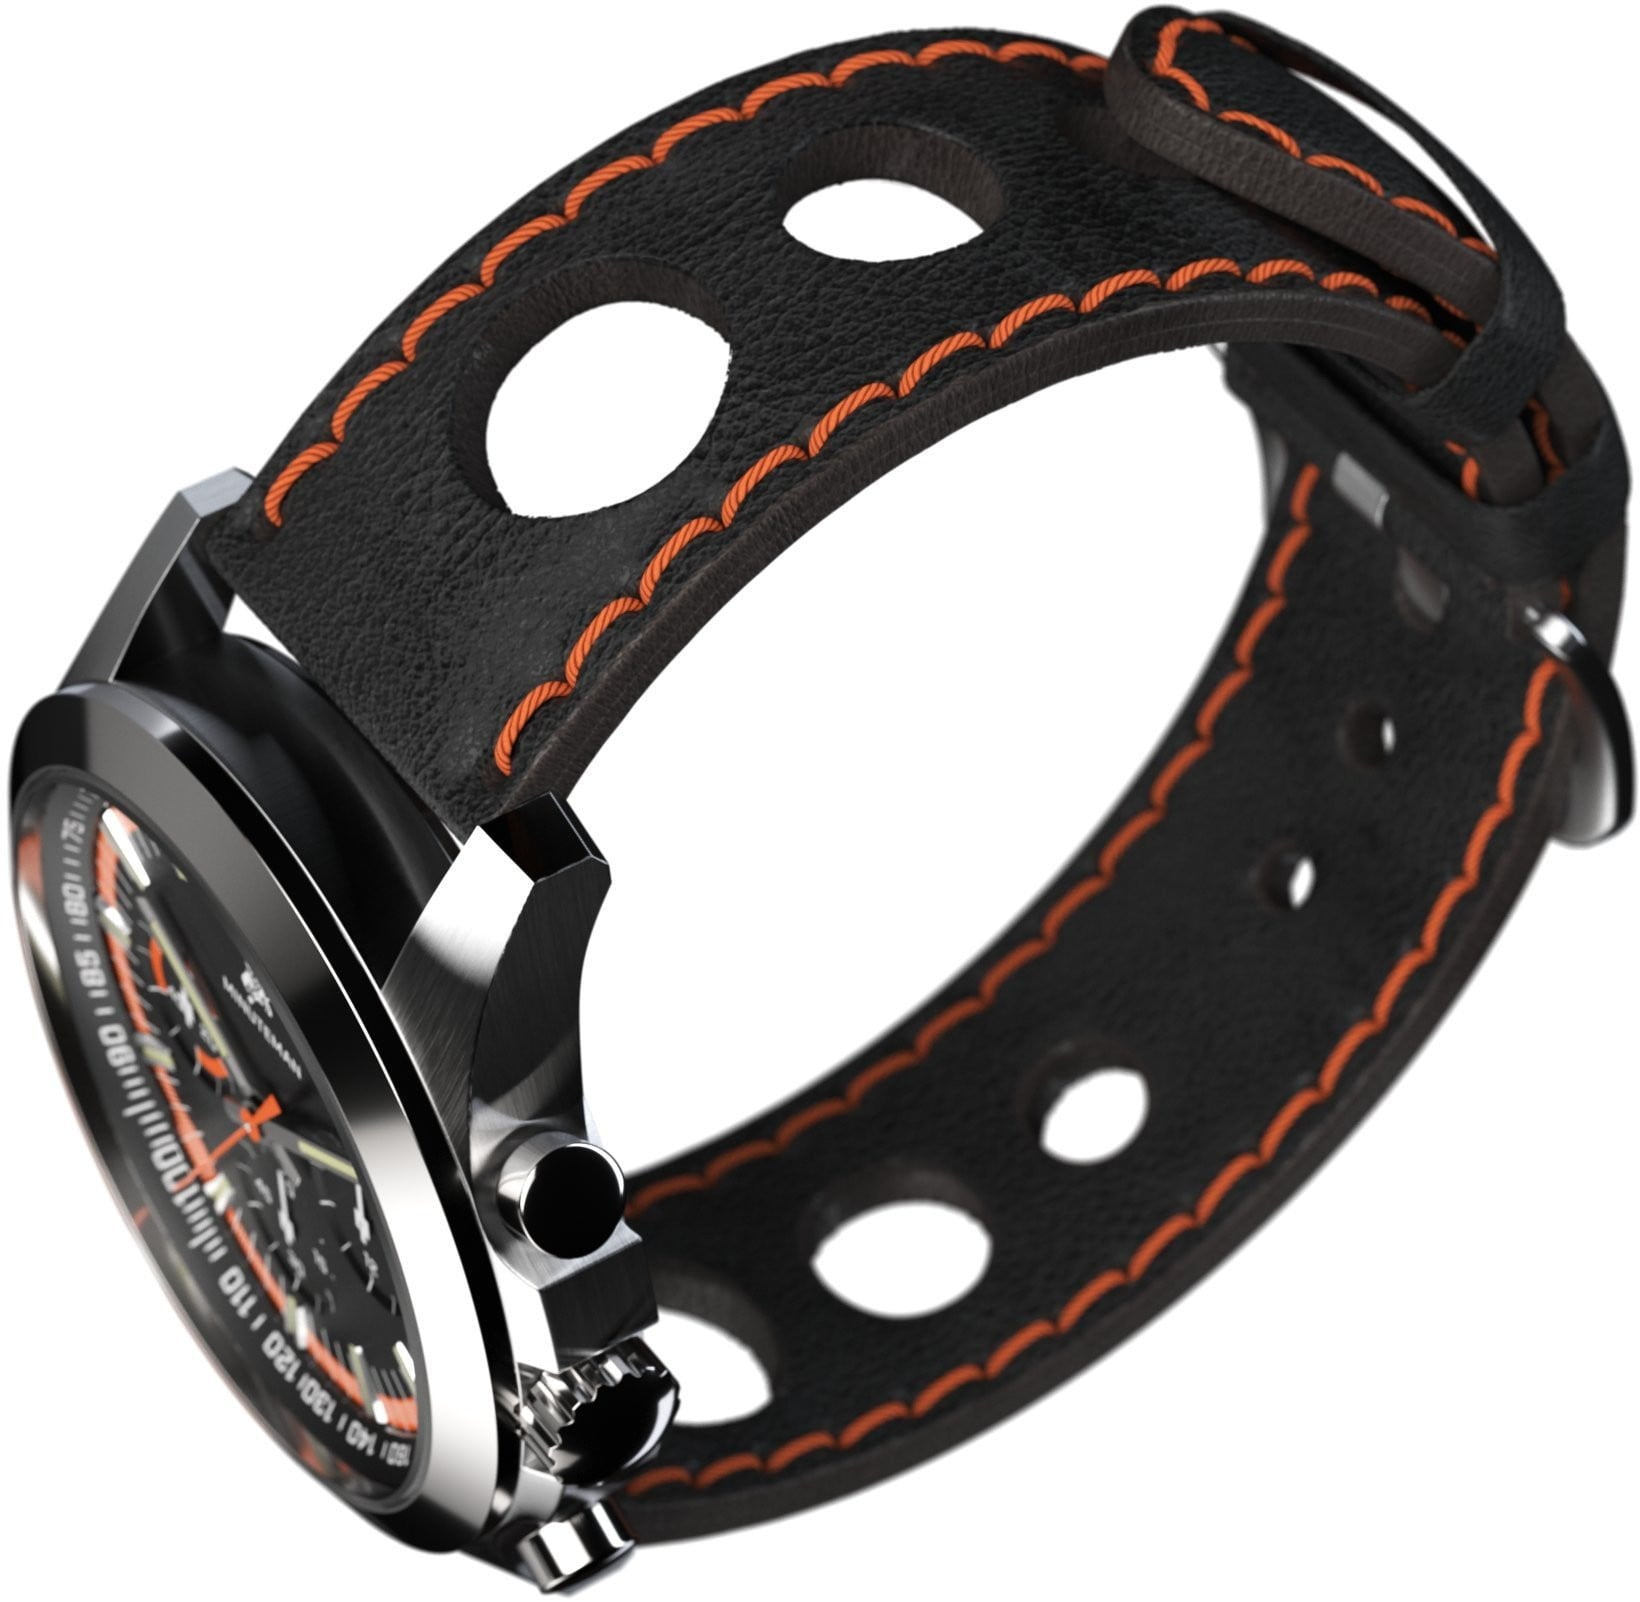 Minuteman Parker Chronograph Watch Black Leather Strap Black/Orange Dial Brushed